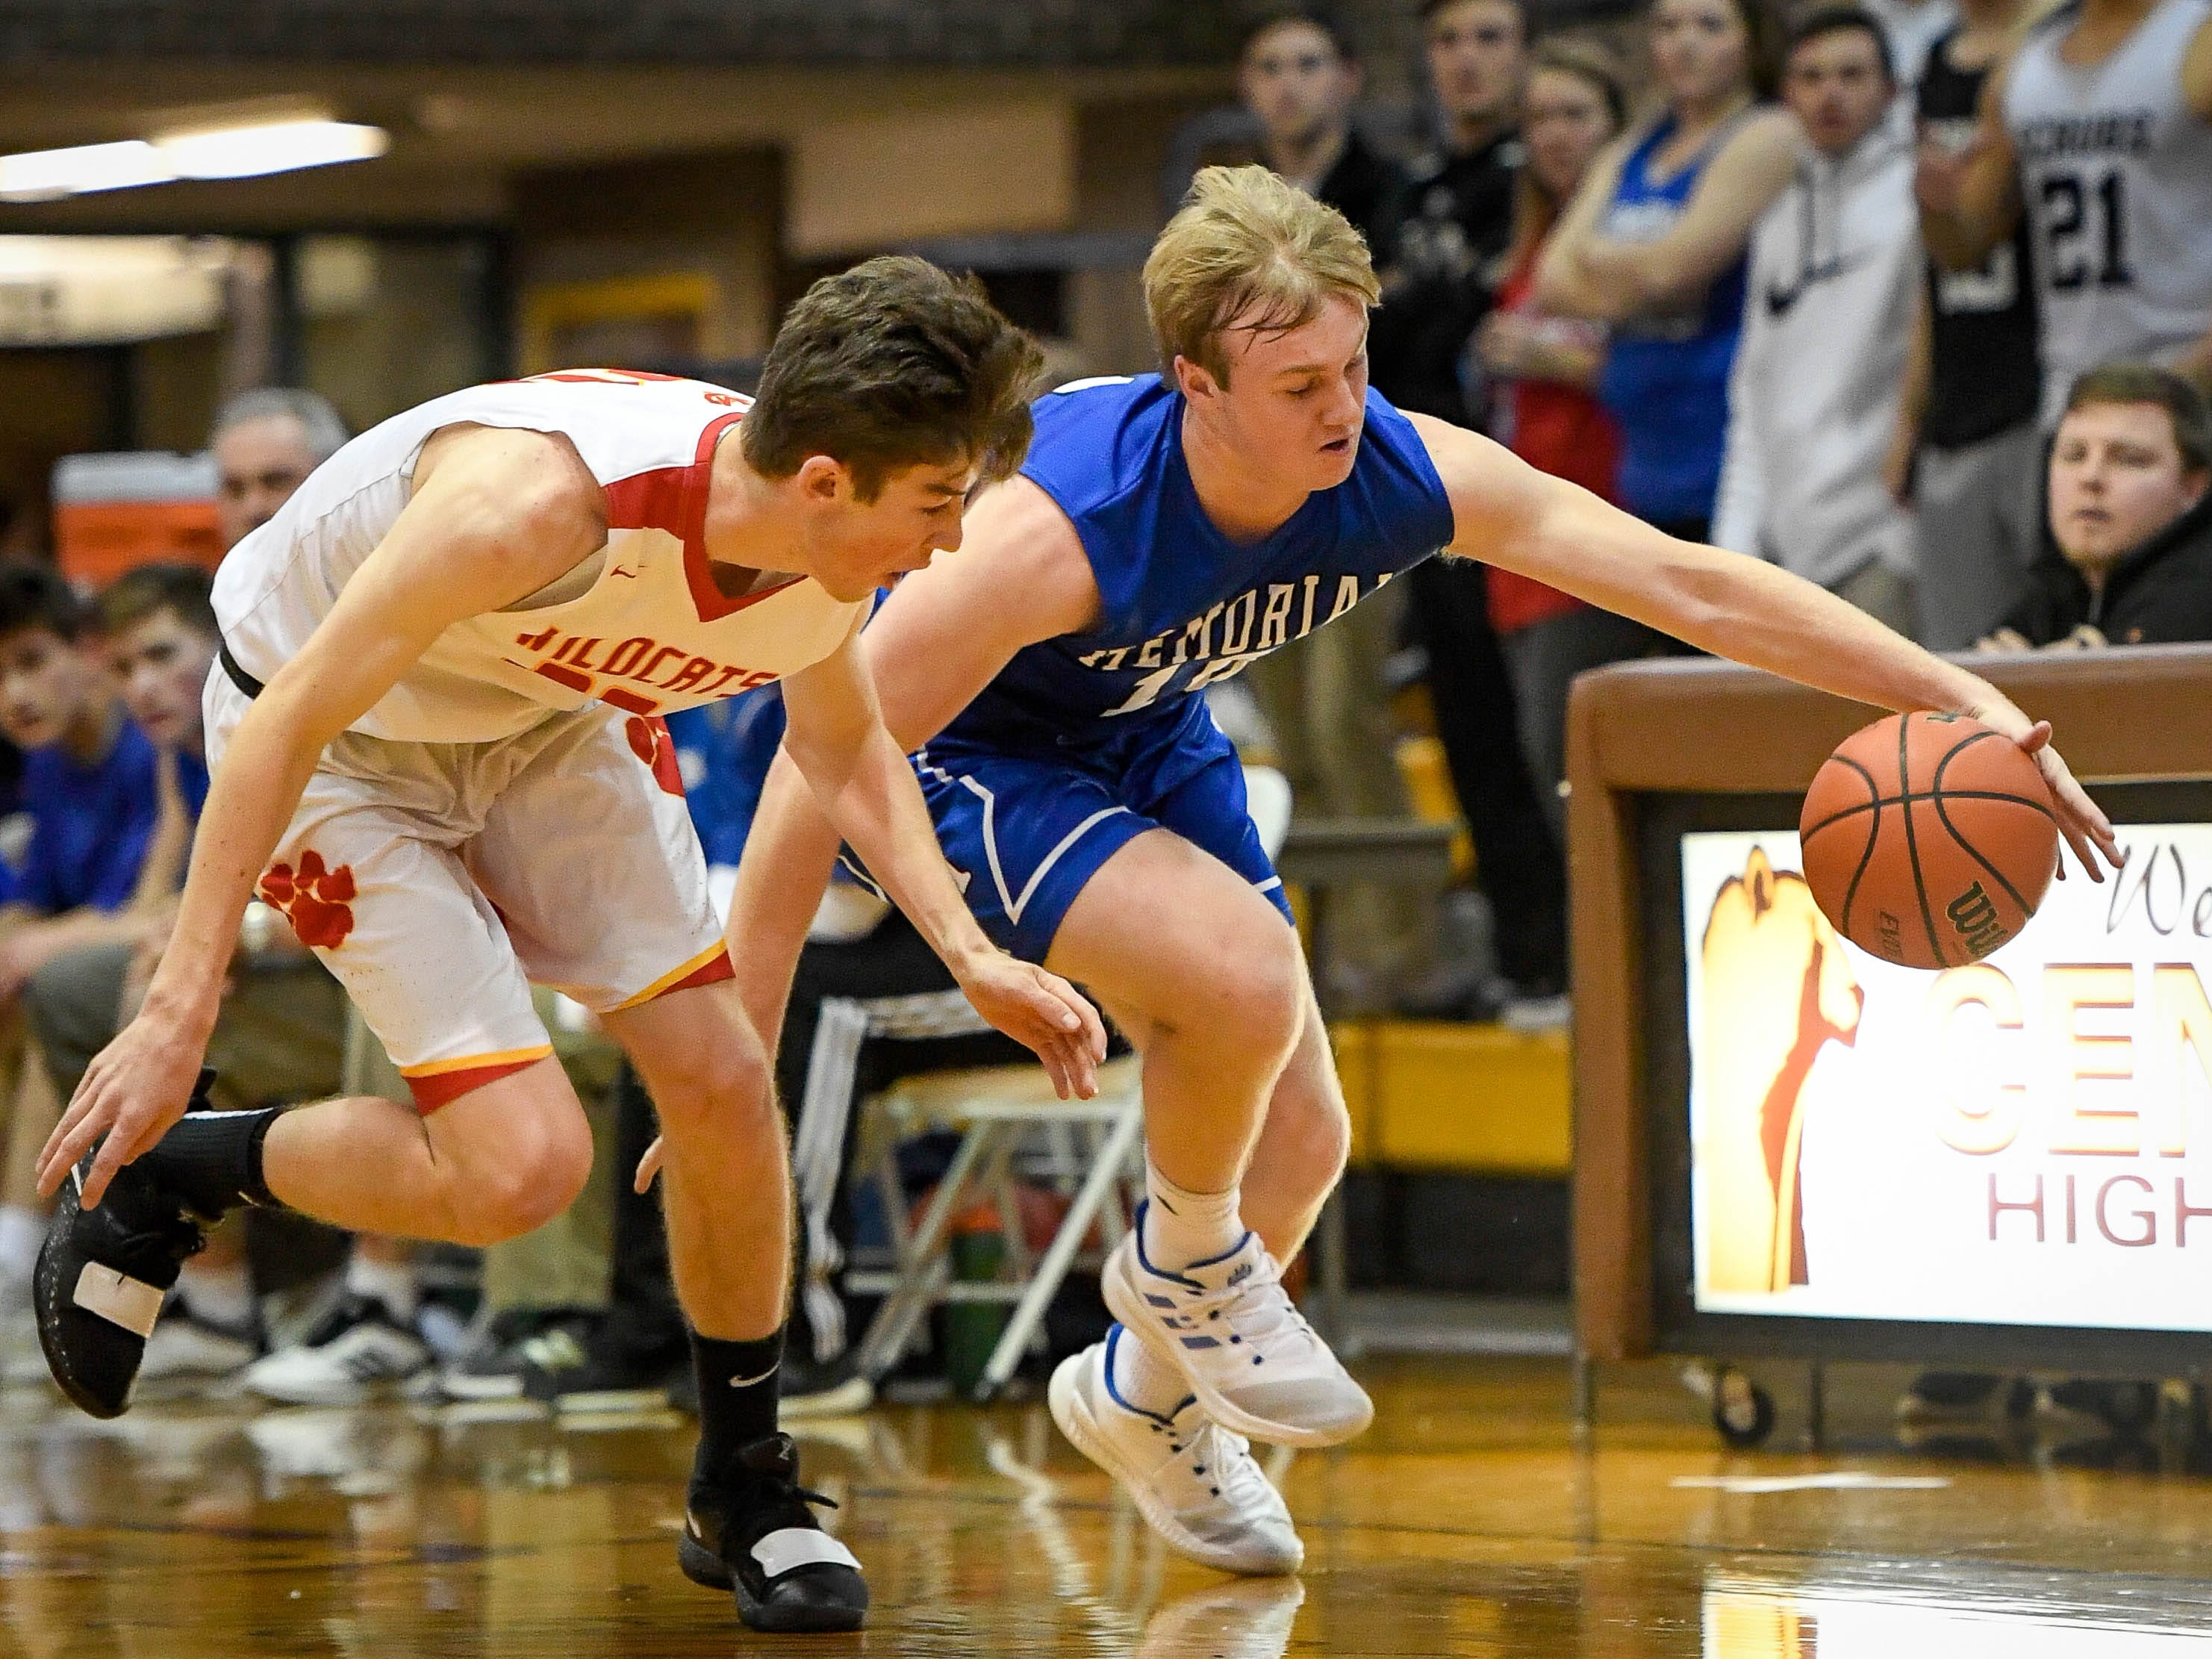 Mater Dei's Zach Schoenstein (30) and Memorial's Michael Lindauer (10) chase down a loose ball as the Memorial Tigers play the Mater Dei Wildcats in the Southern Indiana Athletic Conference semi-finals at Central High Thursday, January 10, 2019.